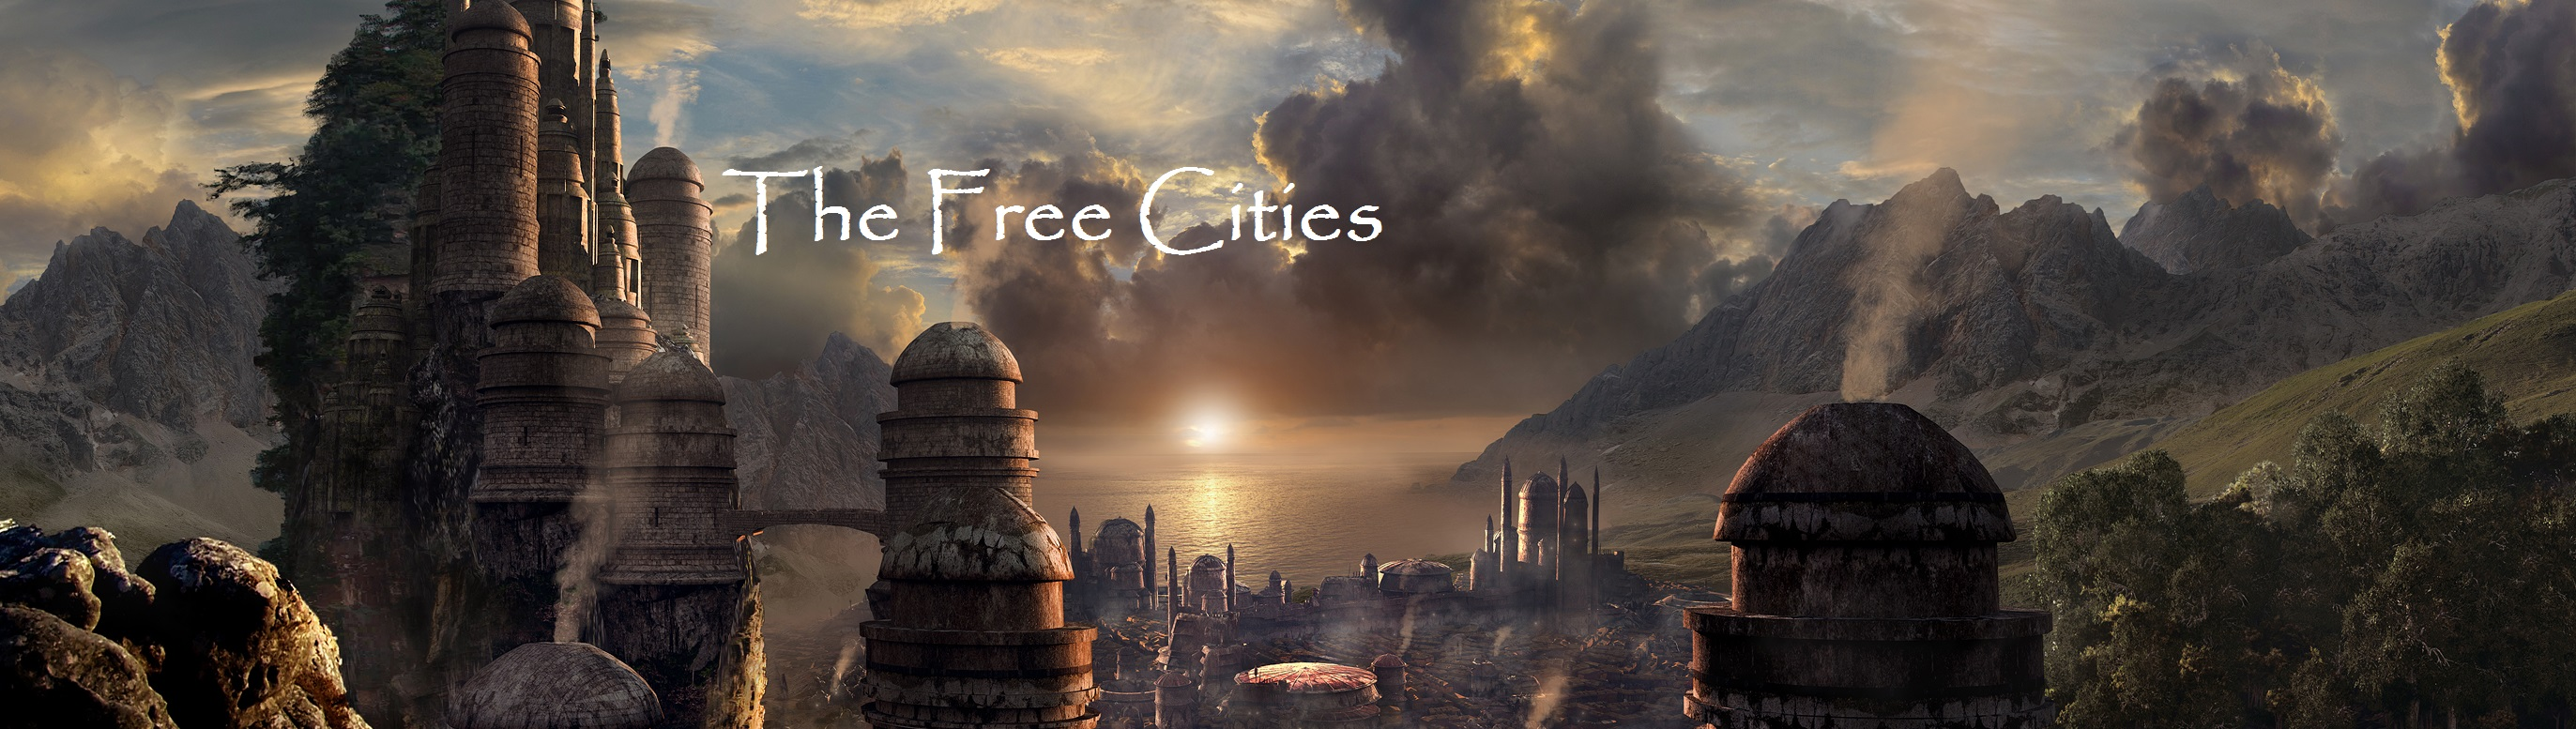 Free cities banner 2